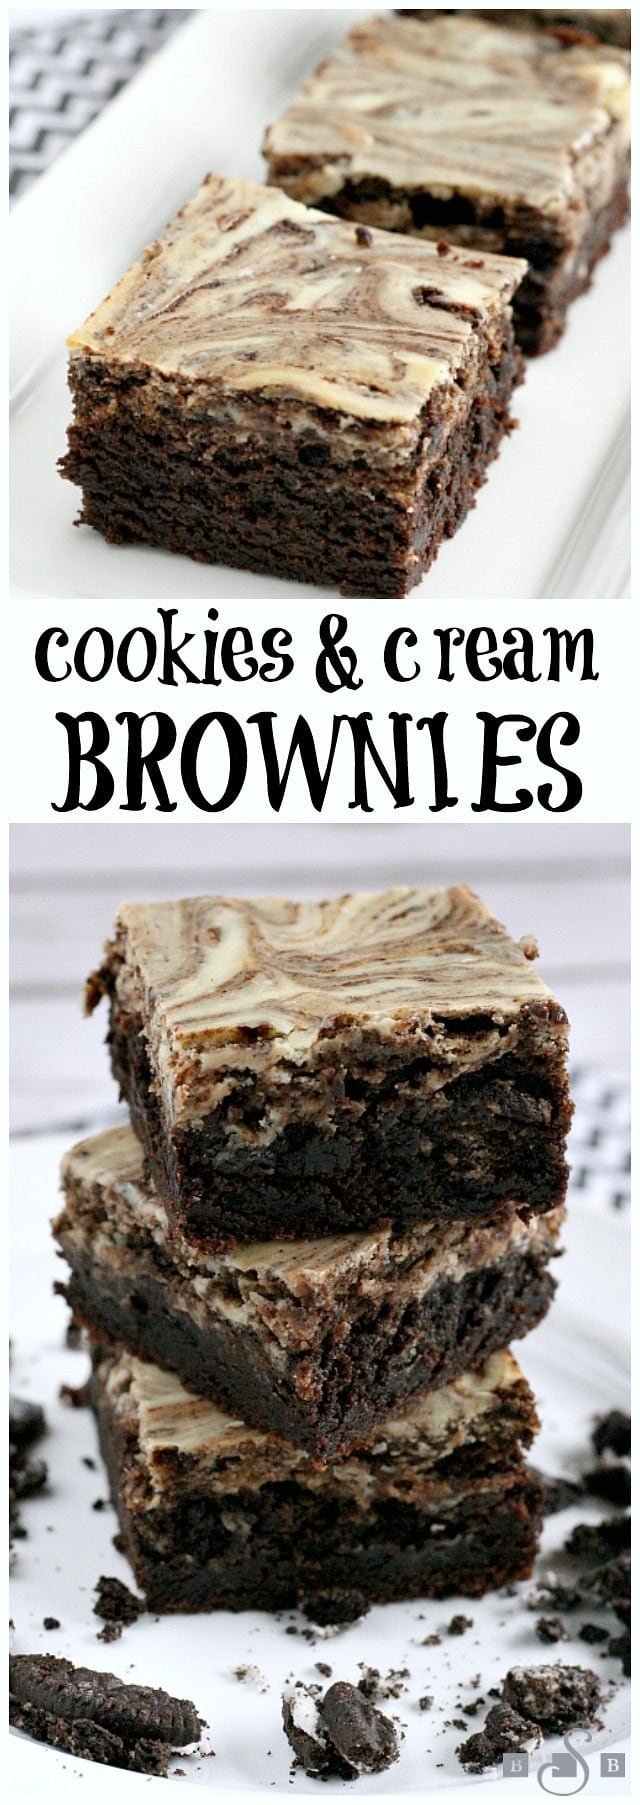 These Cookies & Cream Brownies are the perfect combination of cream cheese, brownies, and Oreo Cookies! Warning: you may want to eat the whole pan yourself!